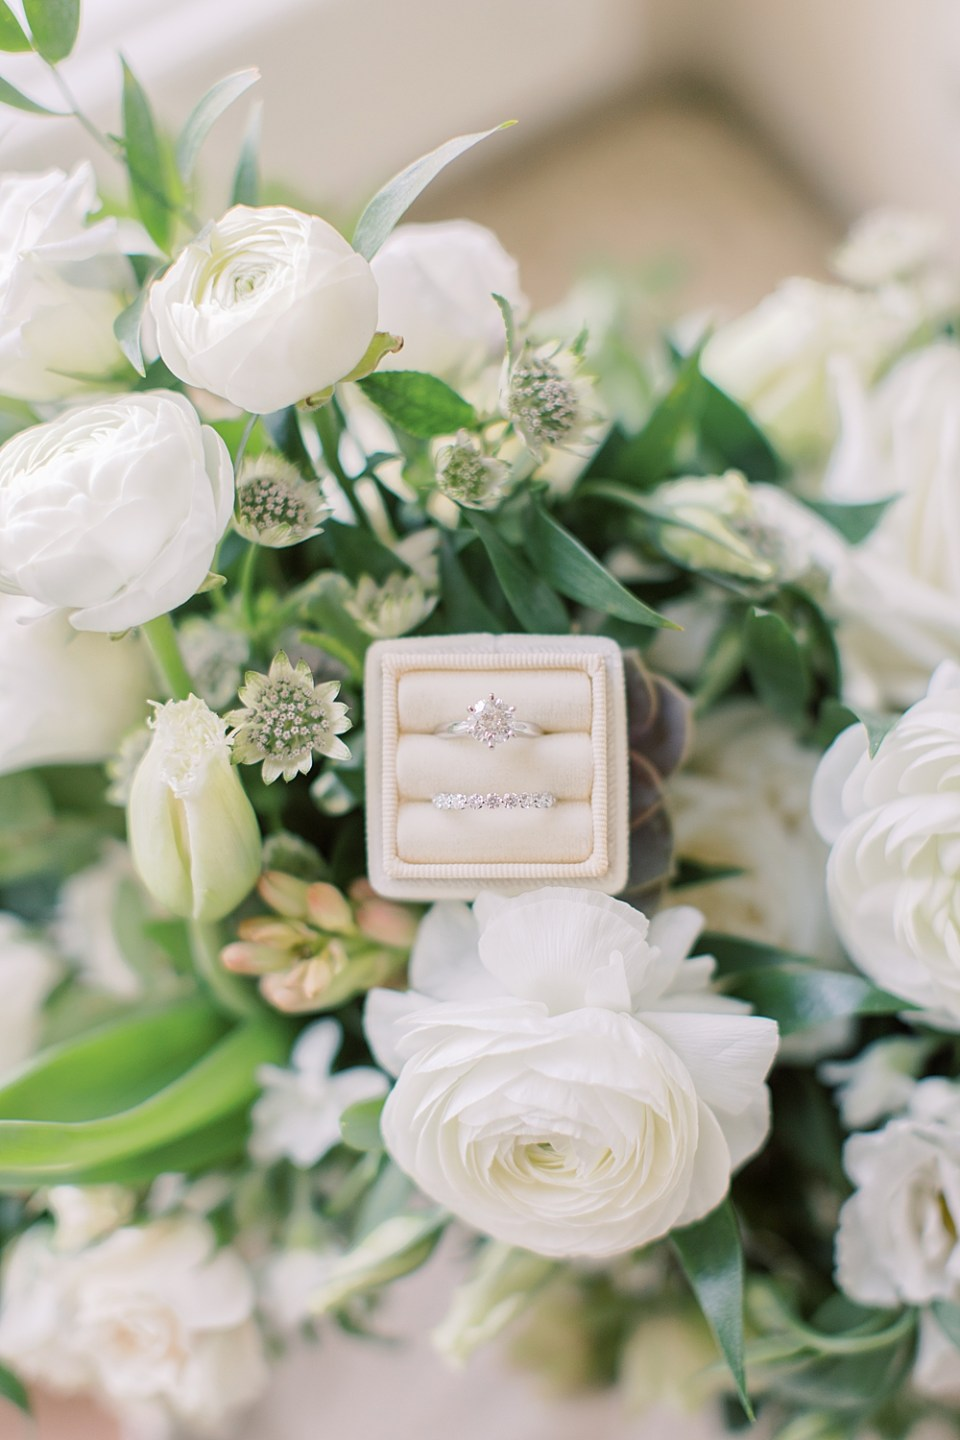 off white ring box | ring shot on flowers | new jersey wedding photographer sarah canning